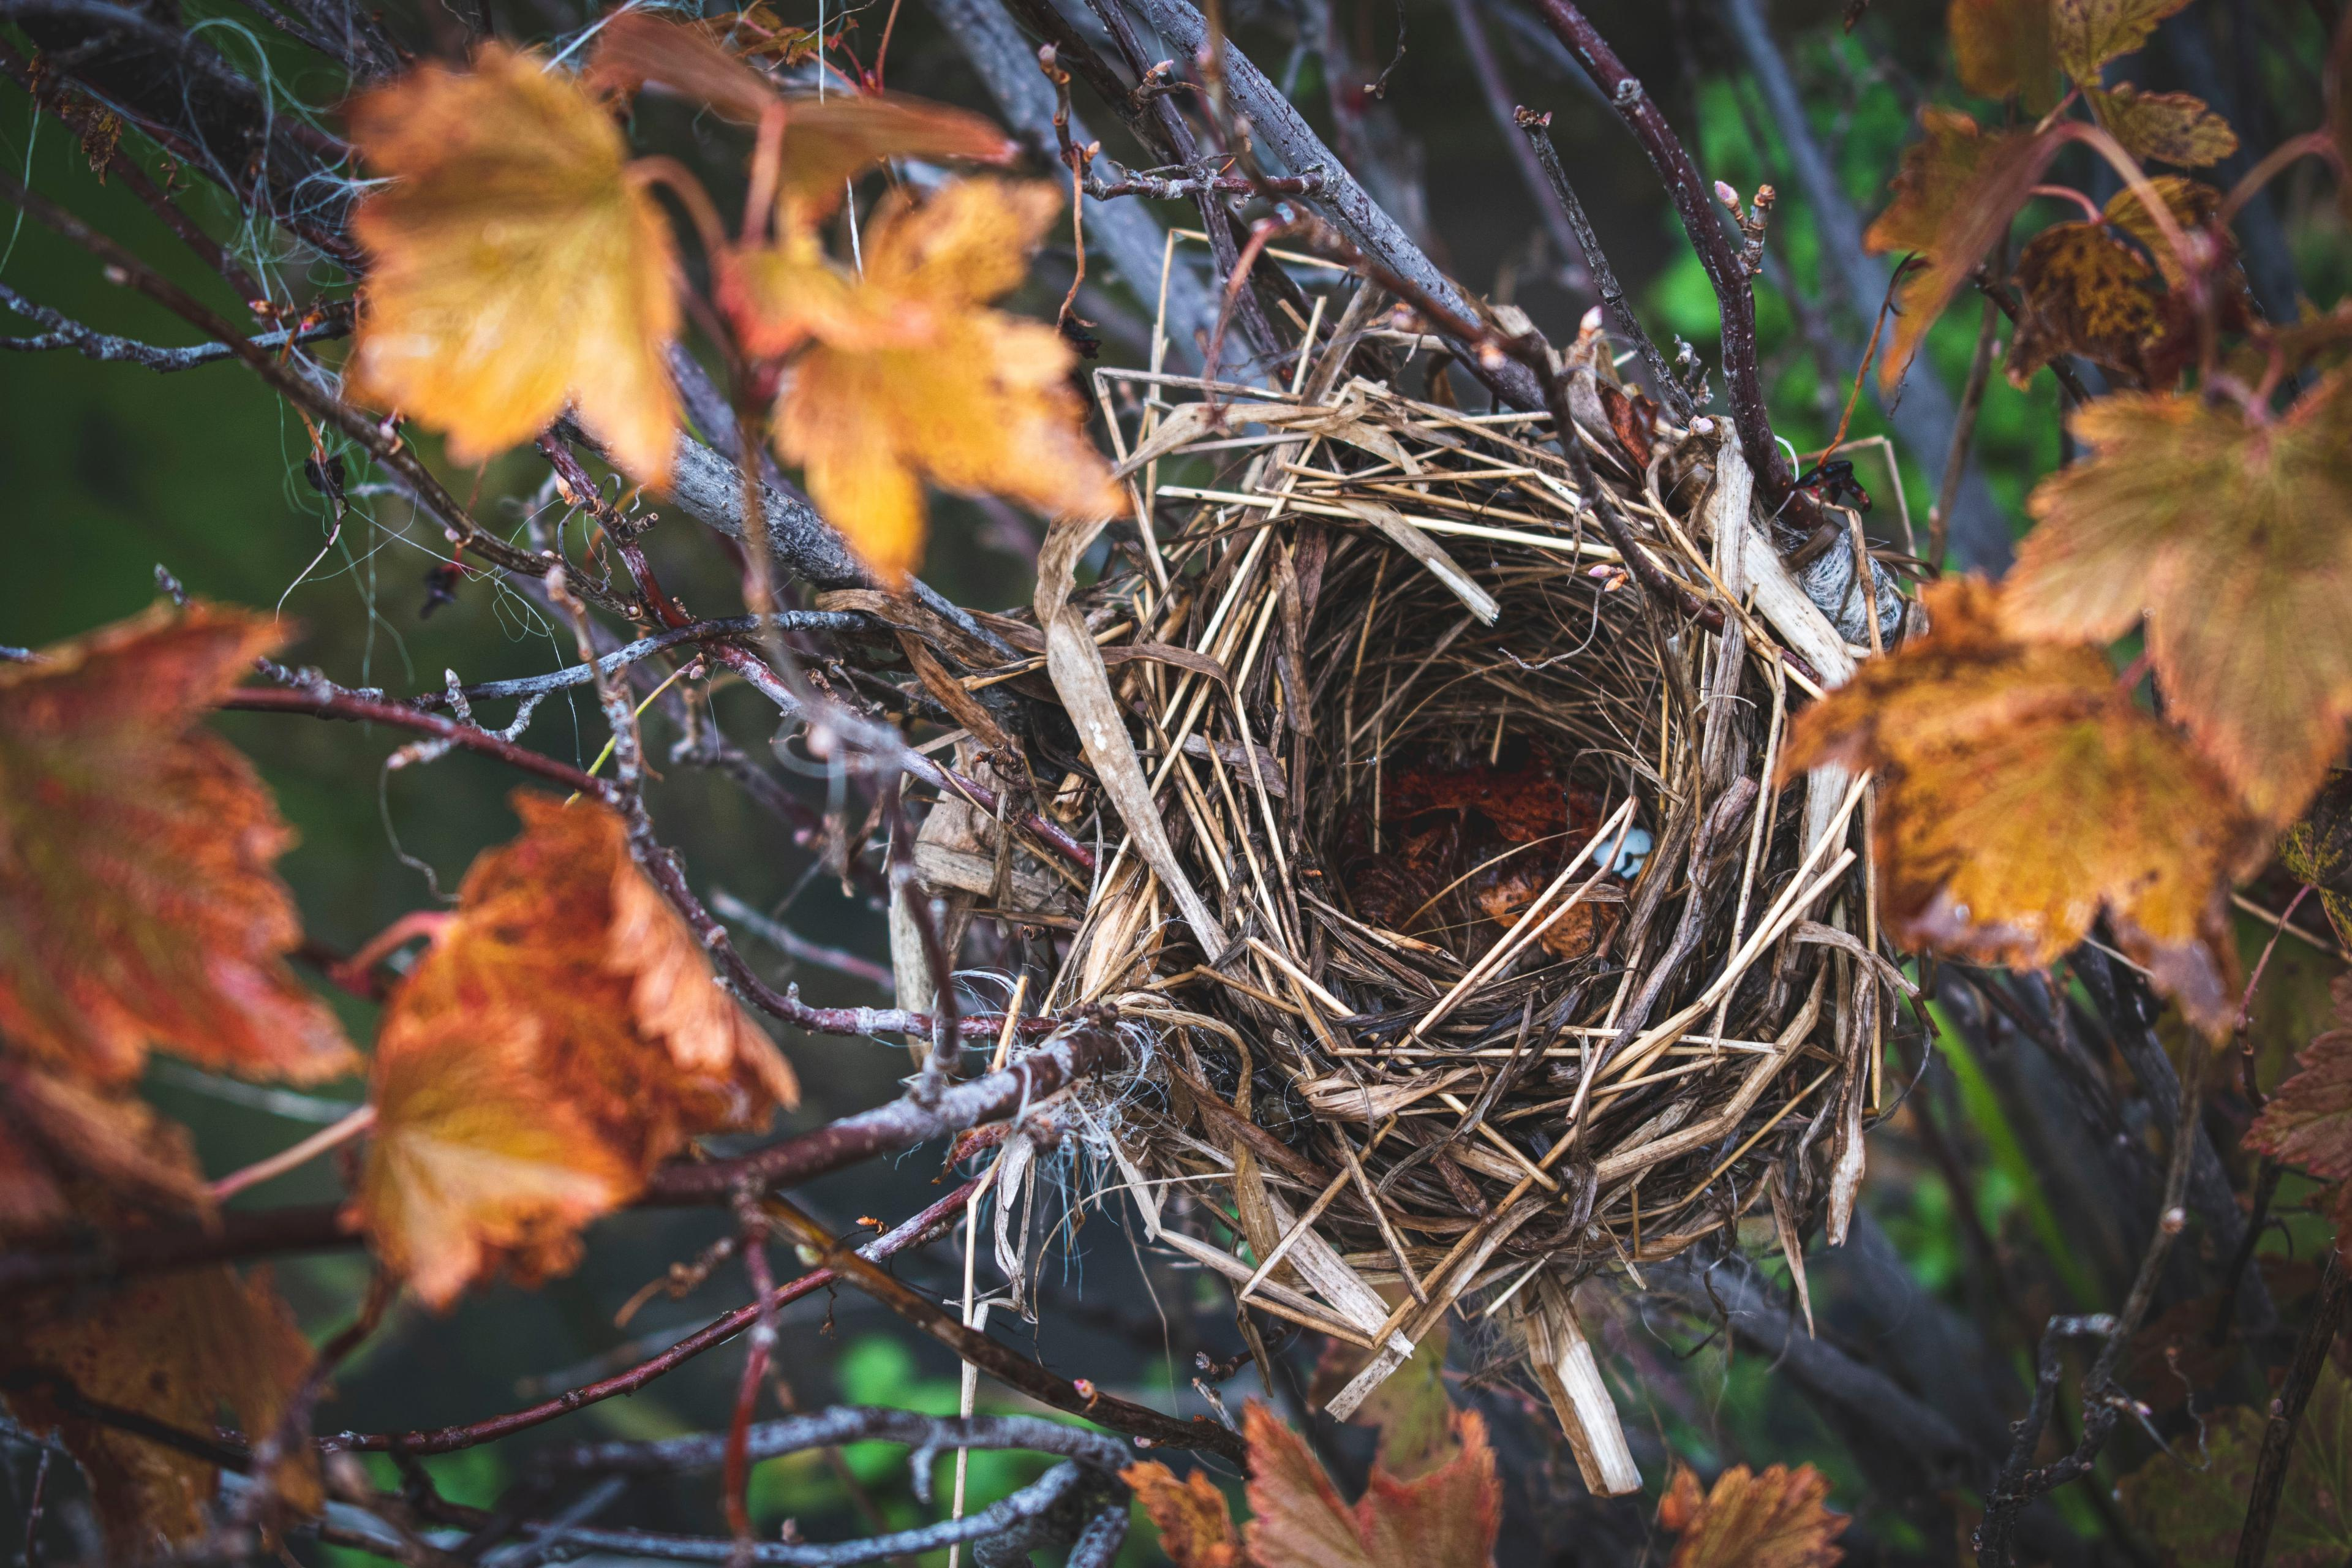 Gold and red autmn leaves surround an abandoned bird's nest